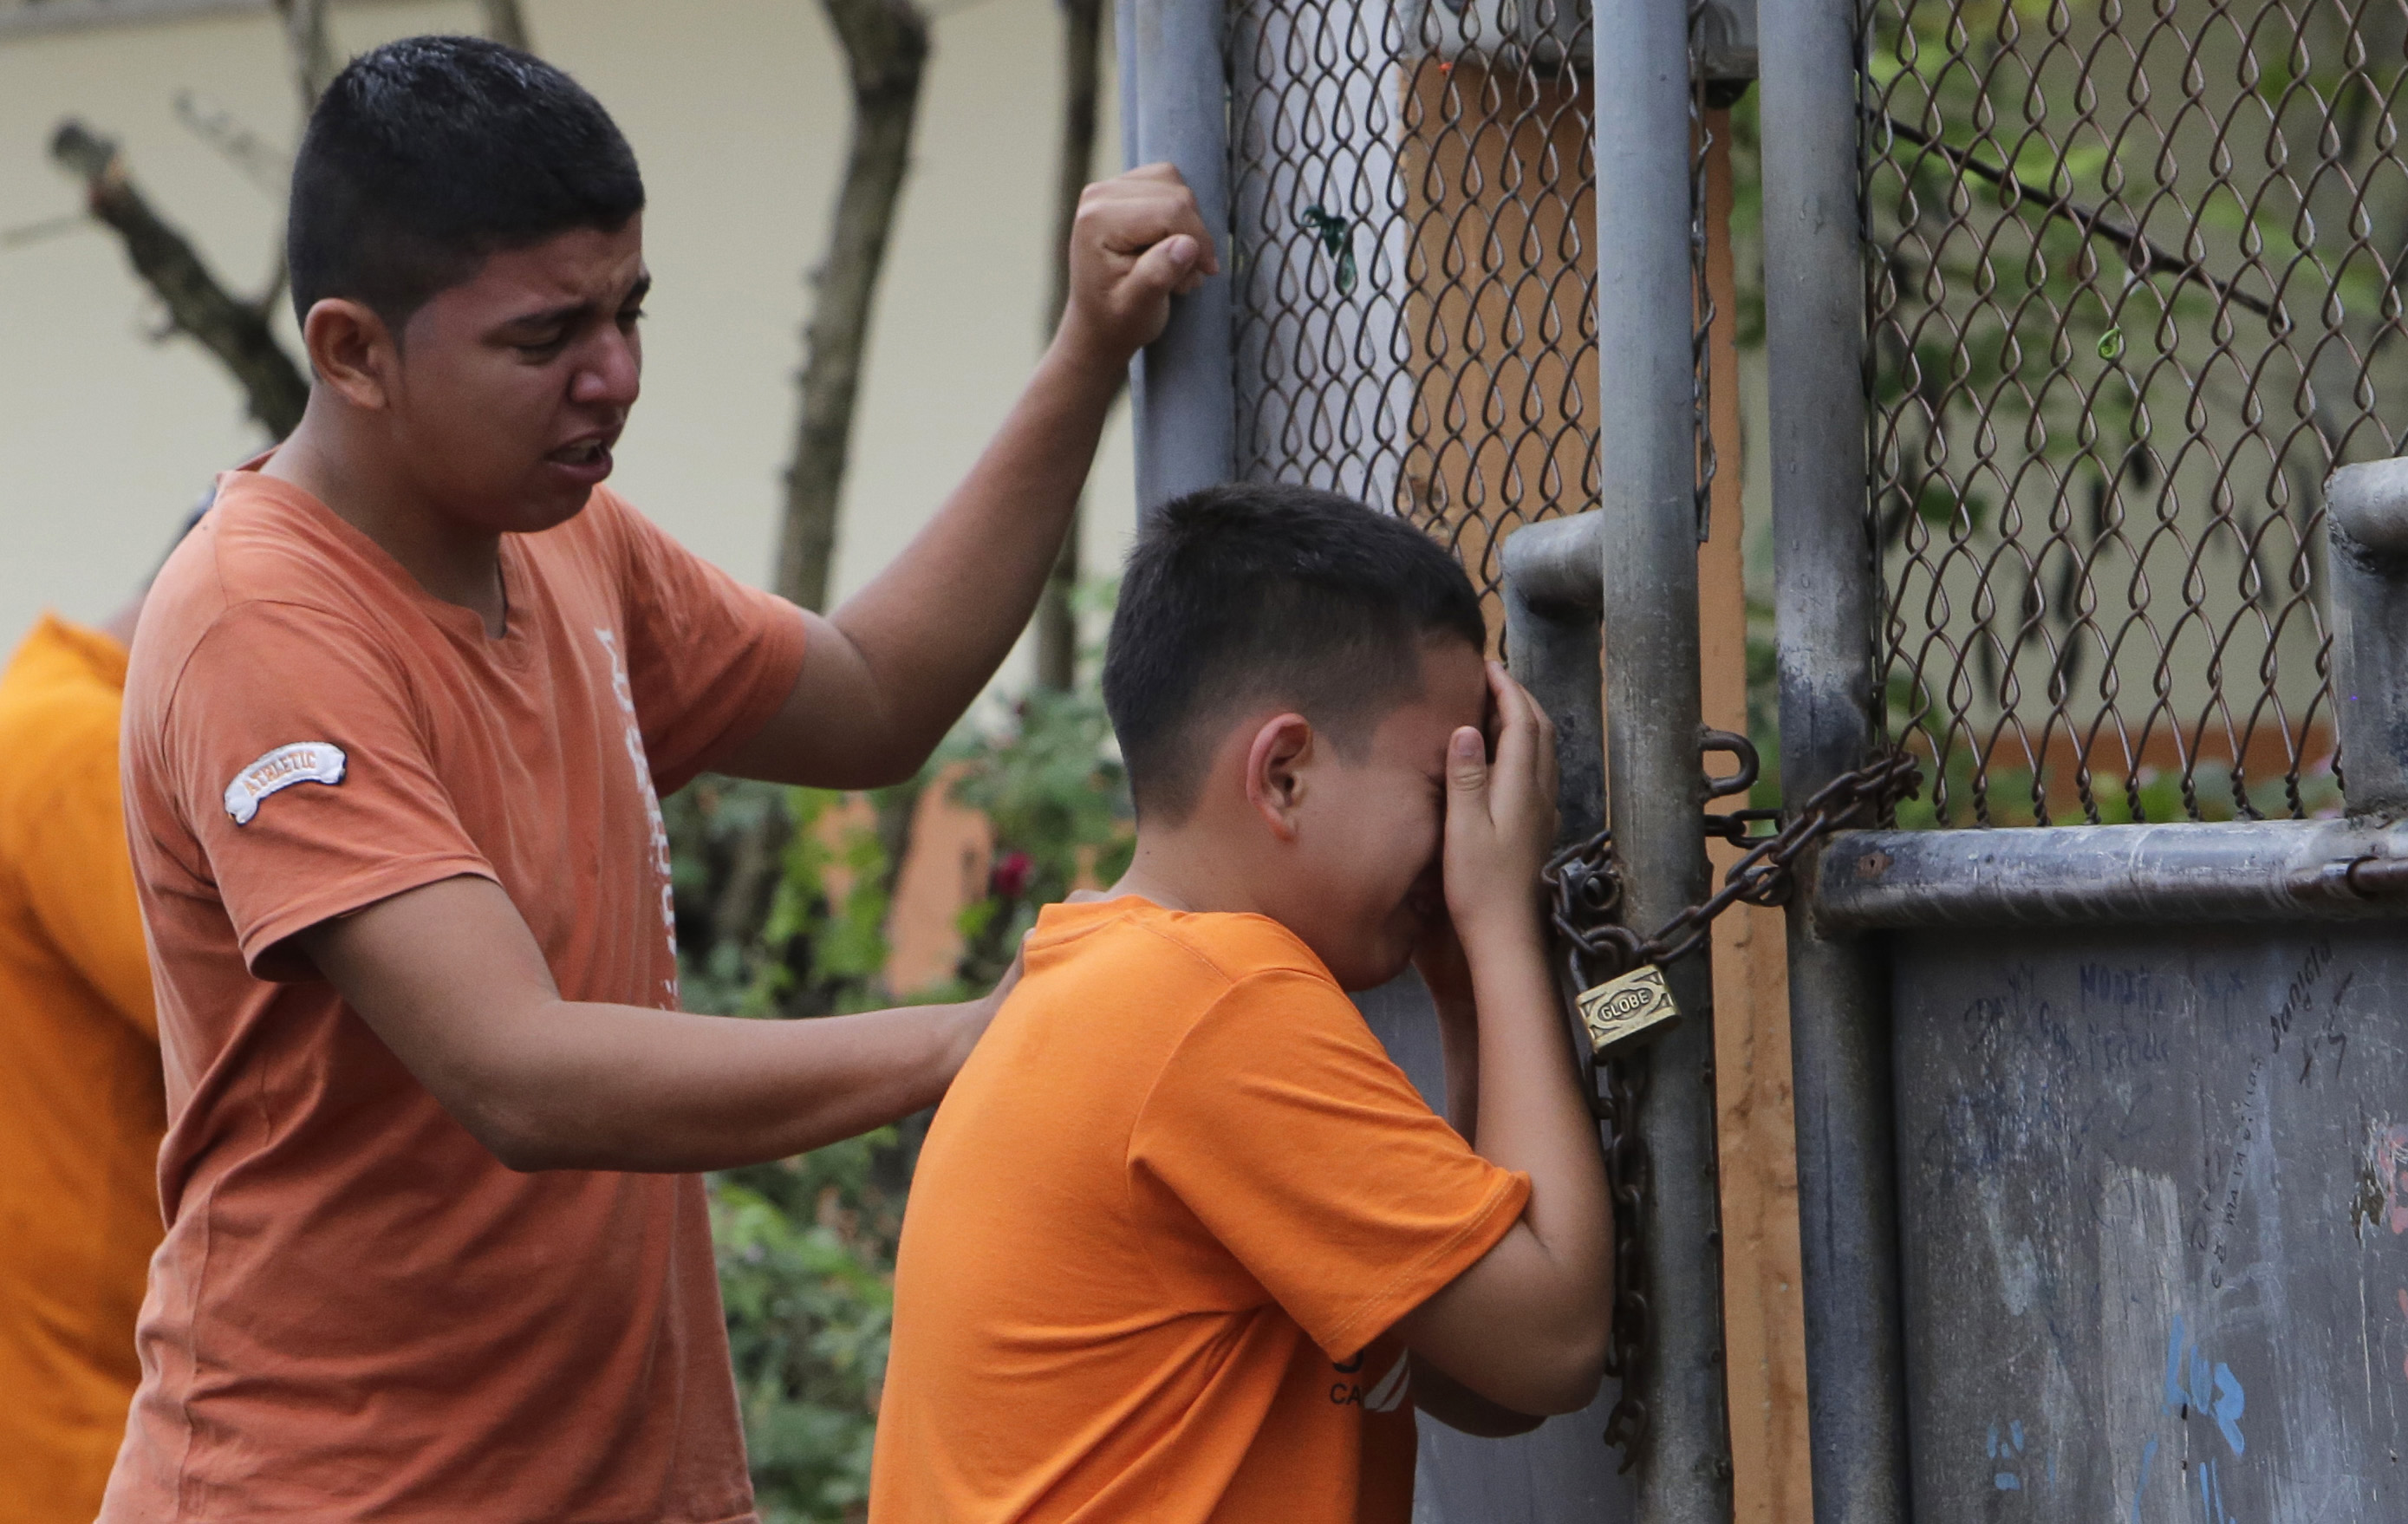 Boys cry as he finds out that their sister has been killed in an earthquake in Pedernales, Ecuador, April 17, 2016.